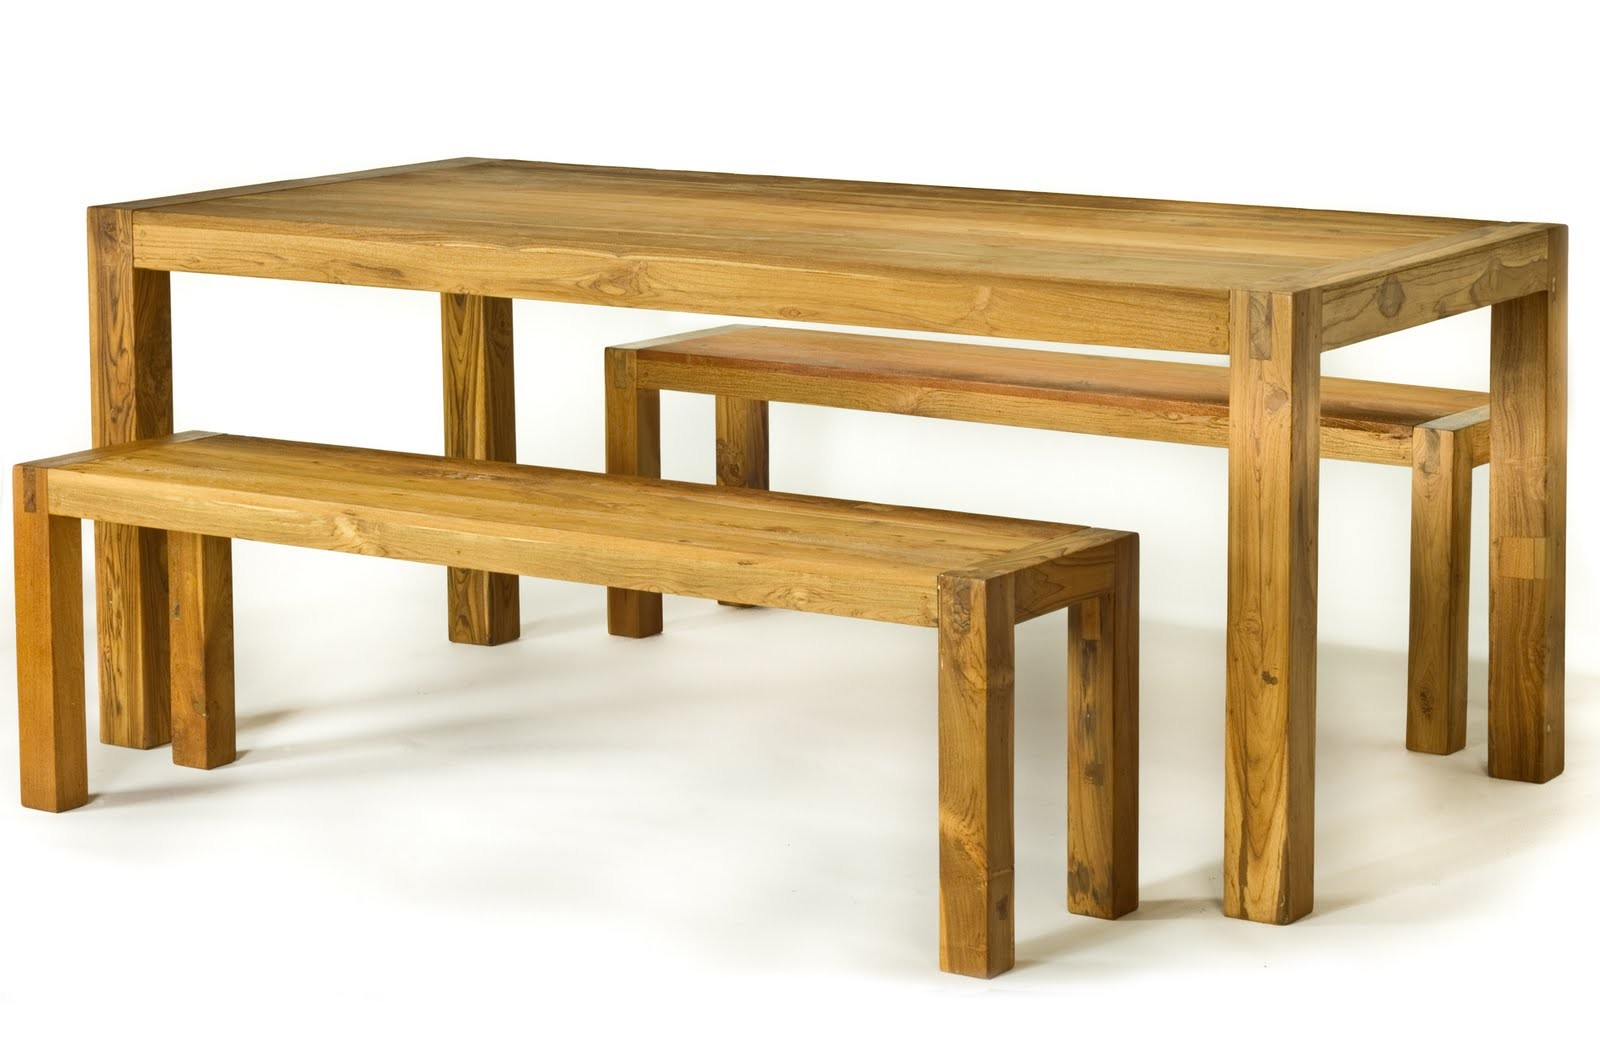 Modern Wood Kitchen Table reclaimed wood kitchen table. i like the natural character in this